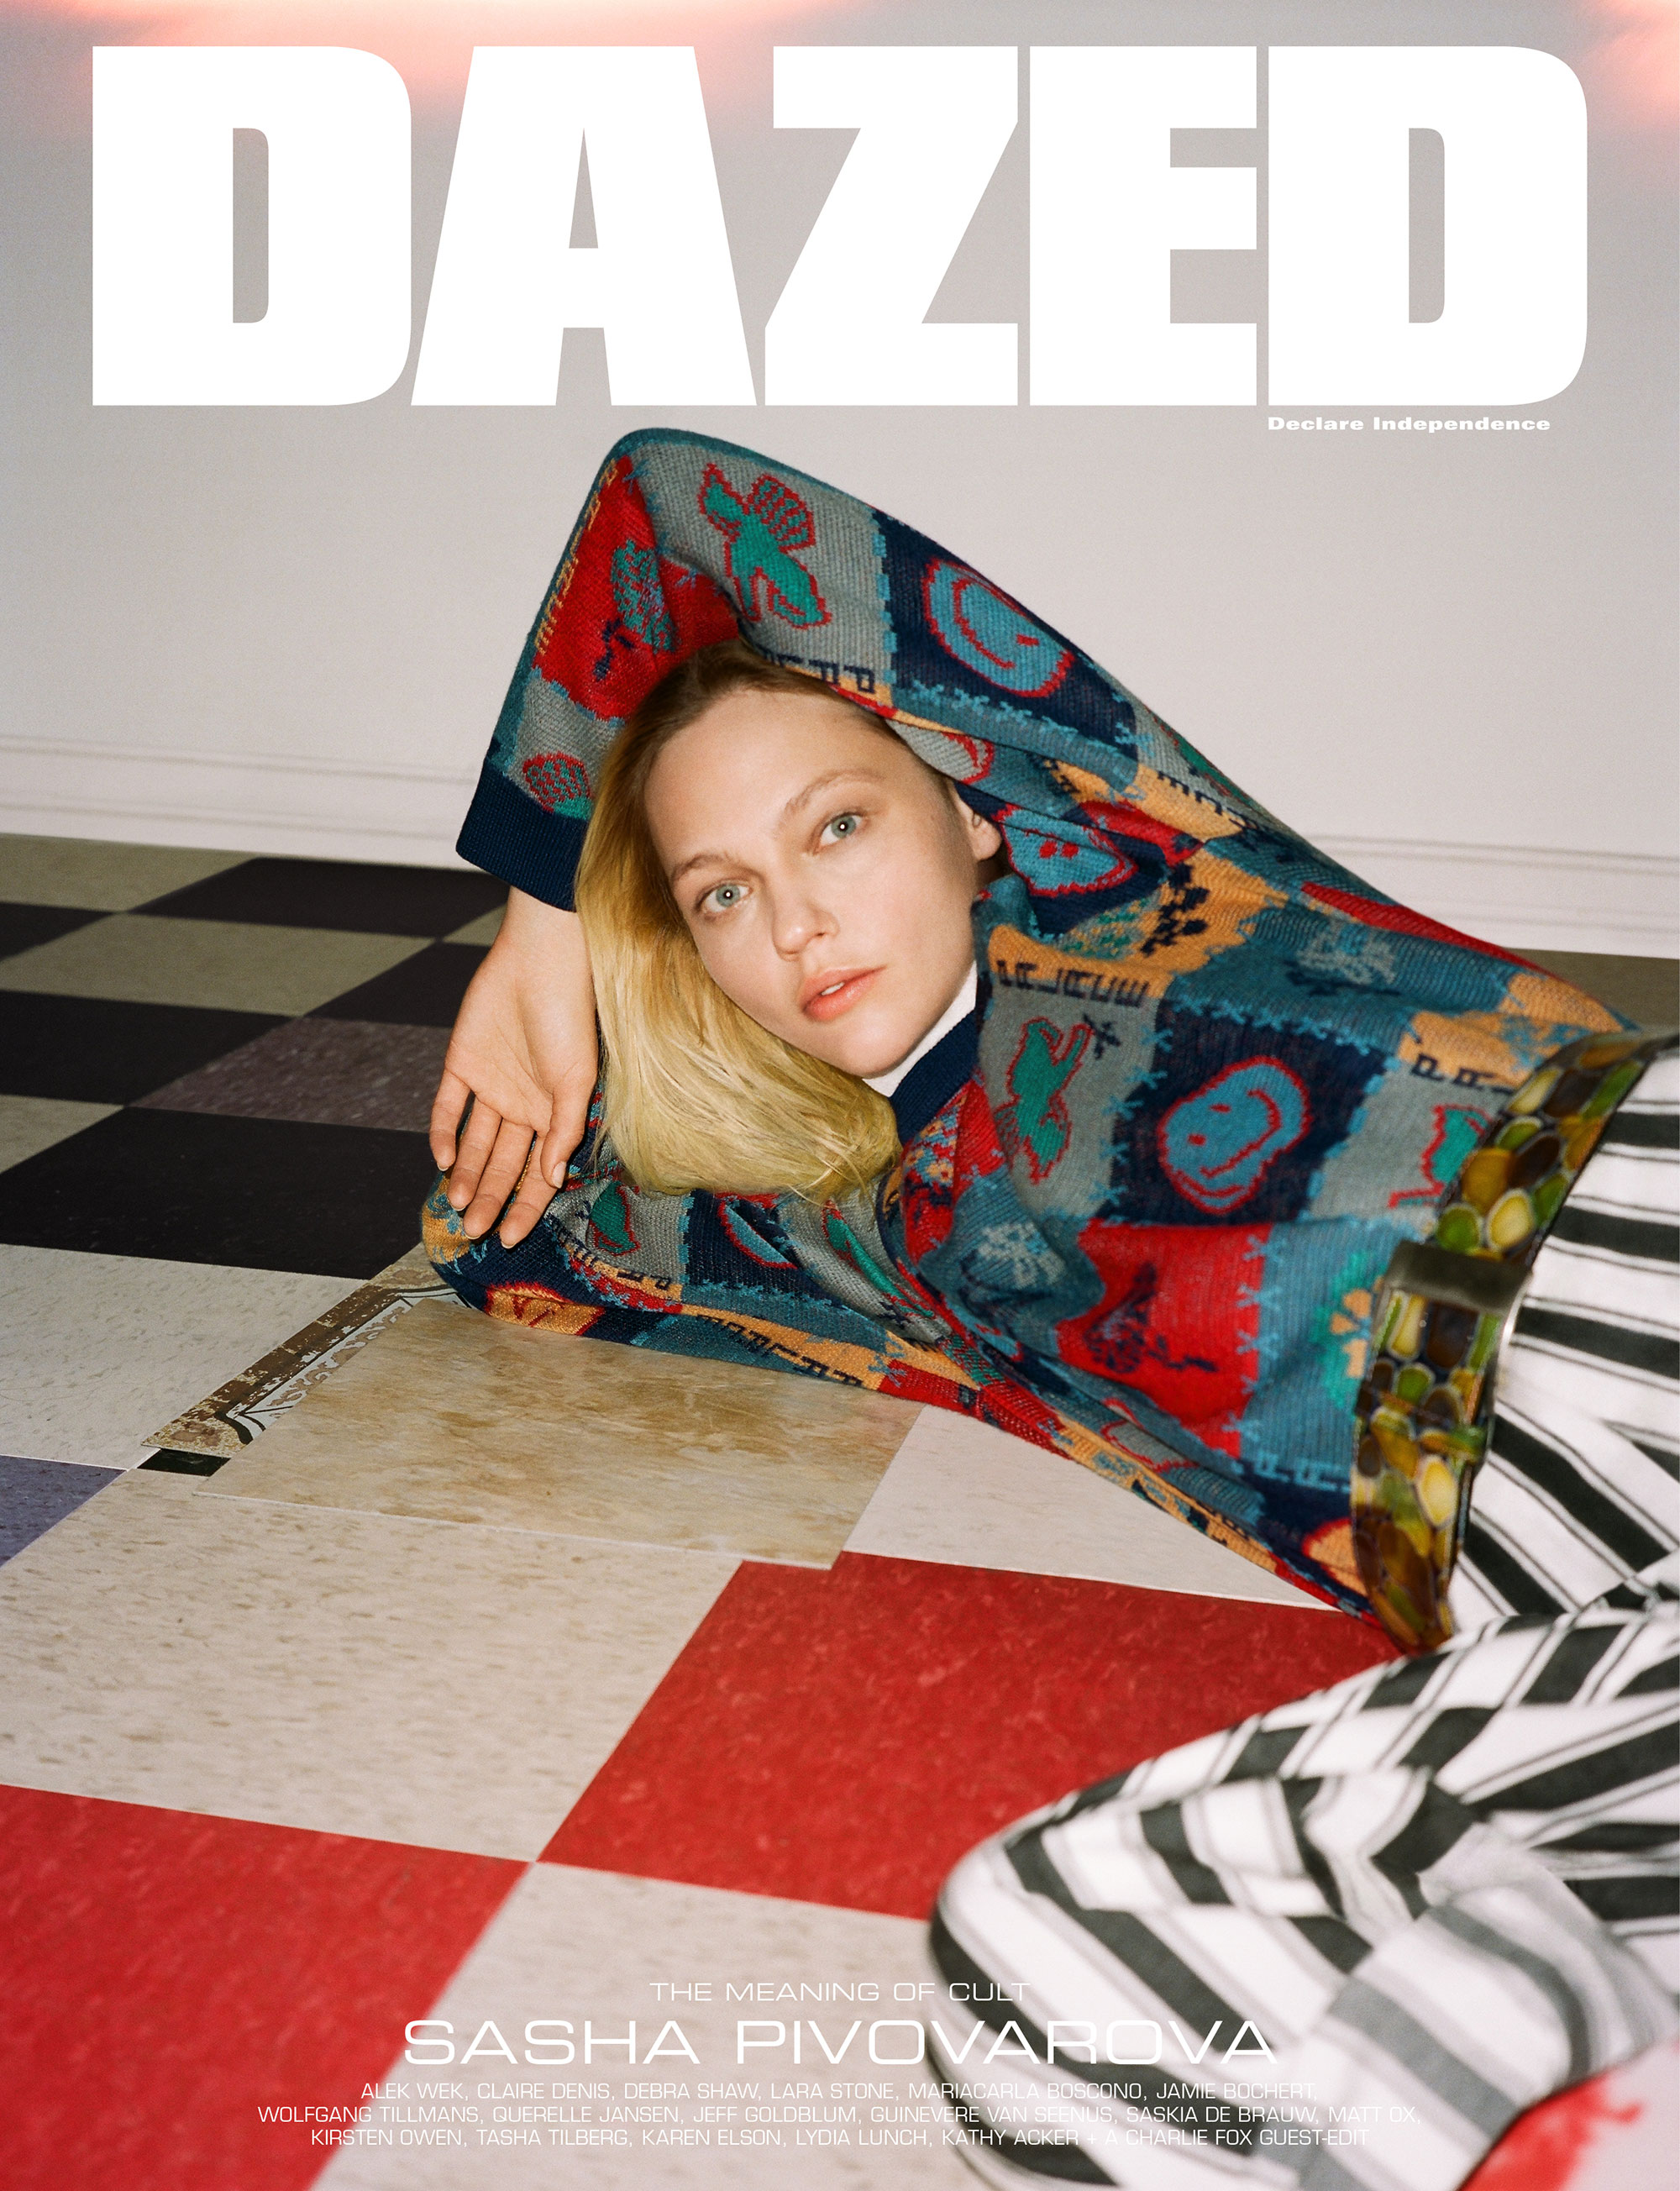 Sasha Pivovarova by Ben Toms for Dazed Magazine's SS2019 'The Meaning of Cult' issue print and digital.